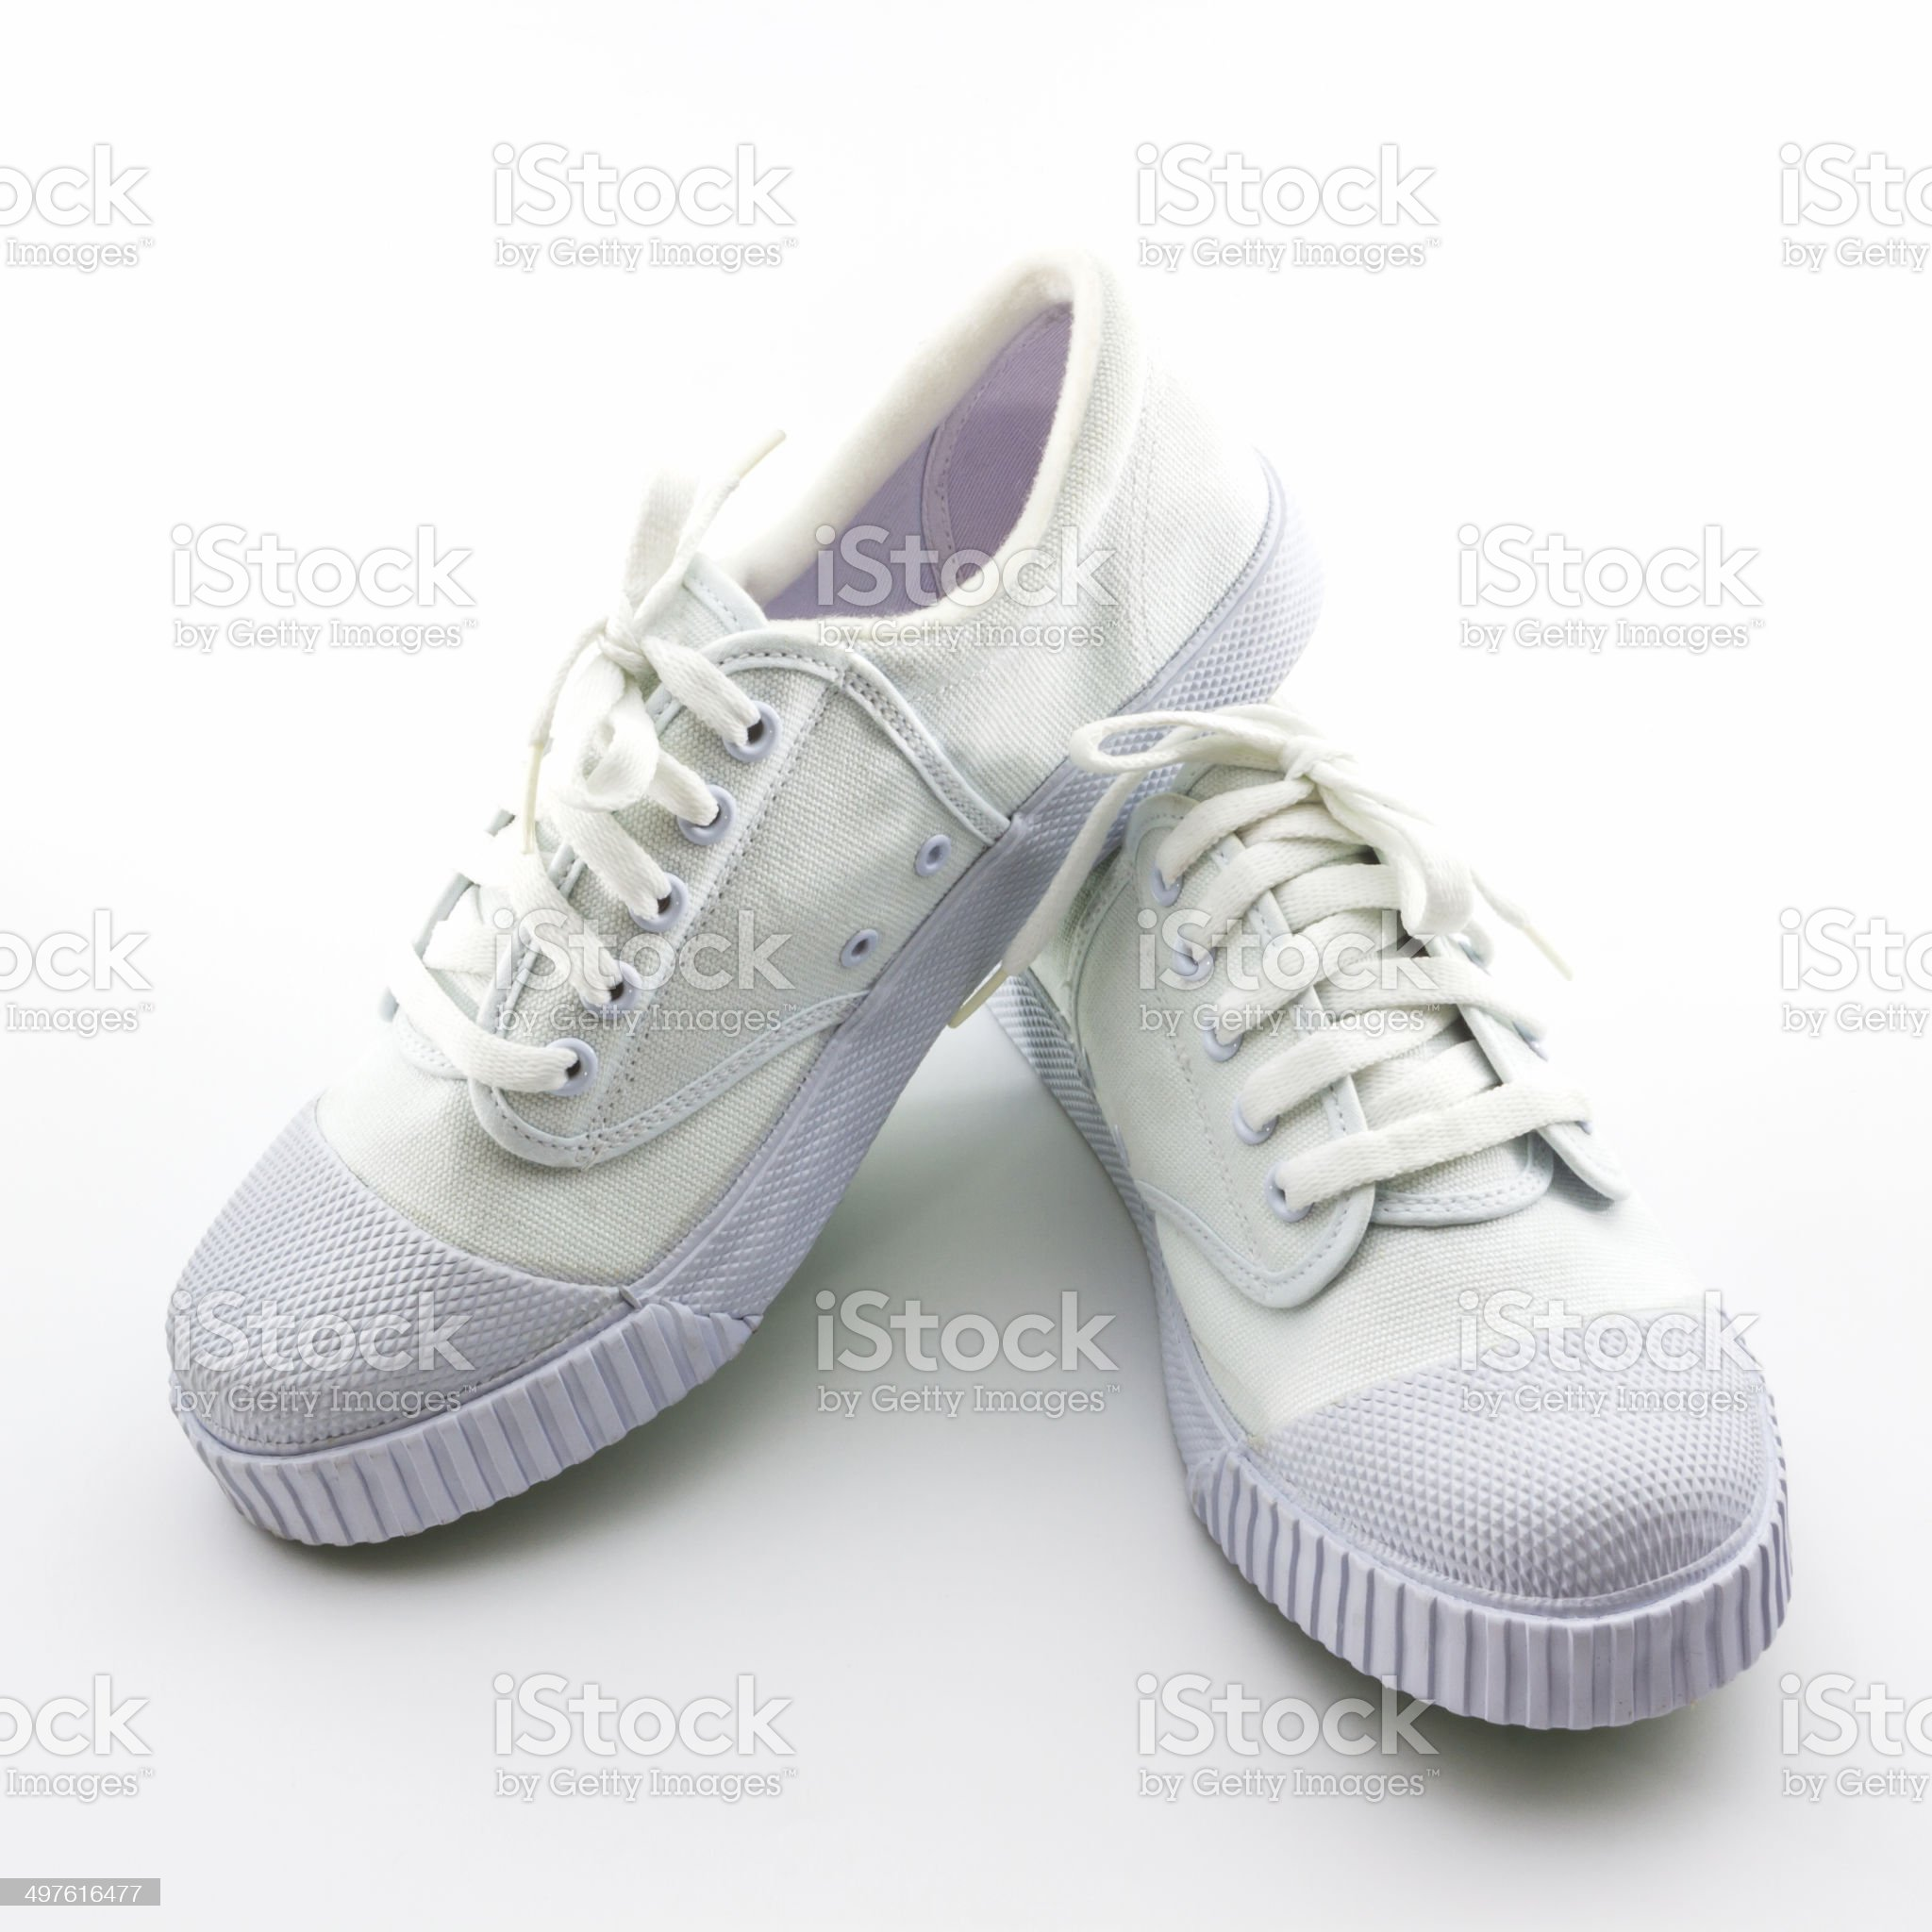 White sport shoes on white background. royalty-free stock photo